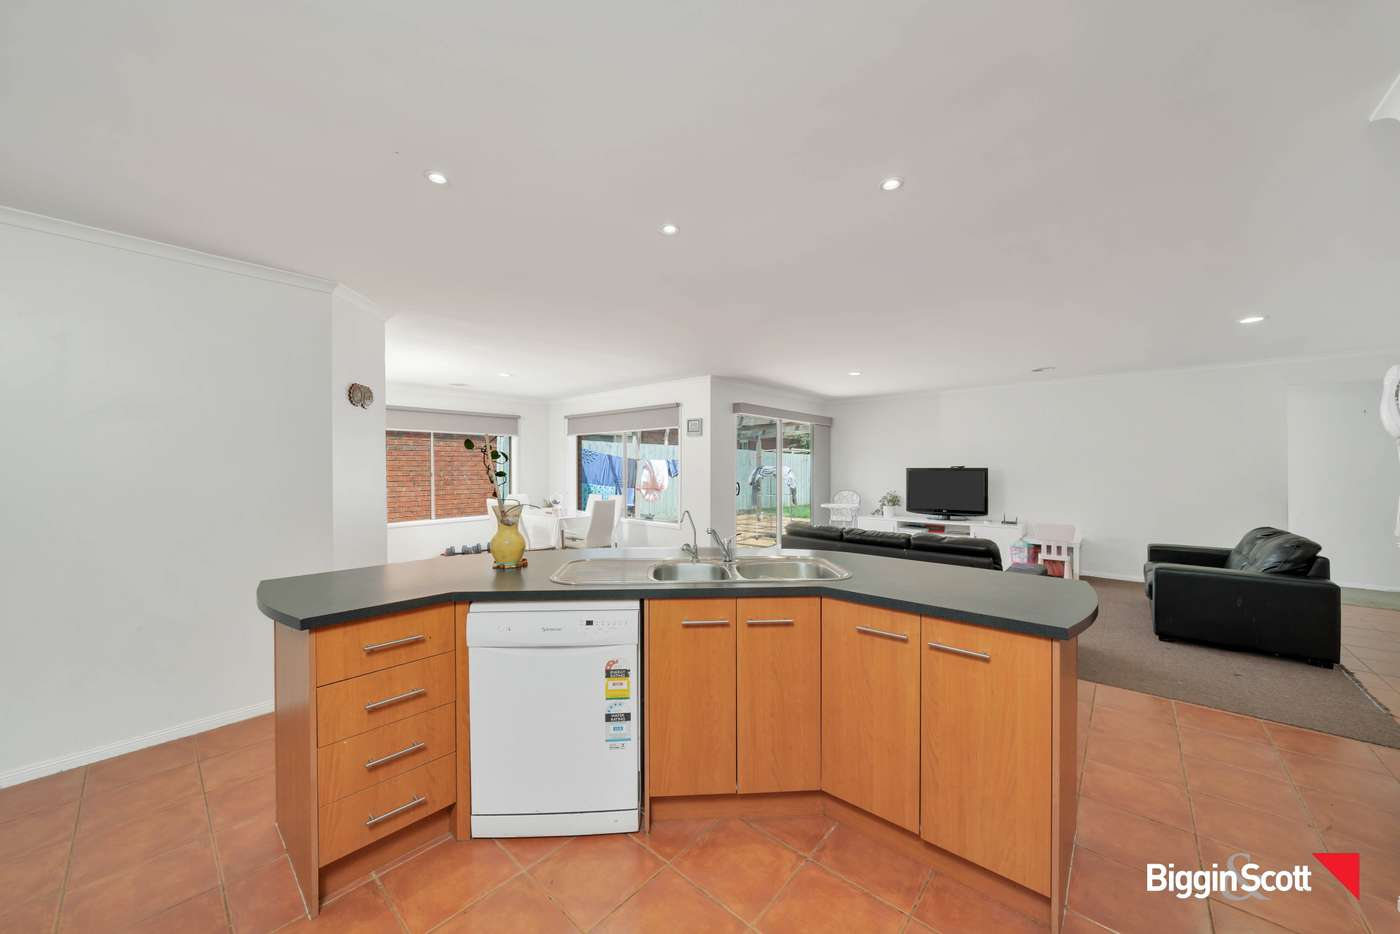 Fifth view of Homely house listing, 18 Kingsfield Way, Truganina VIC 3029